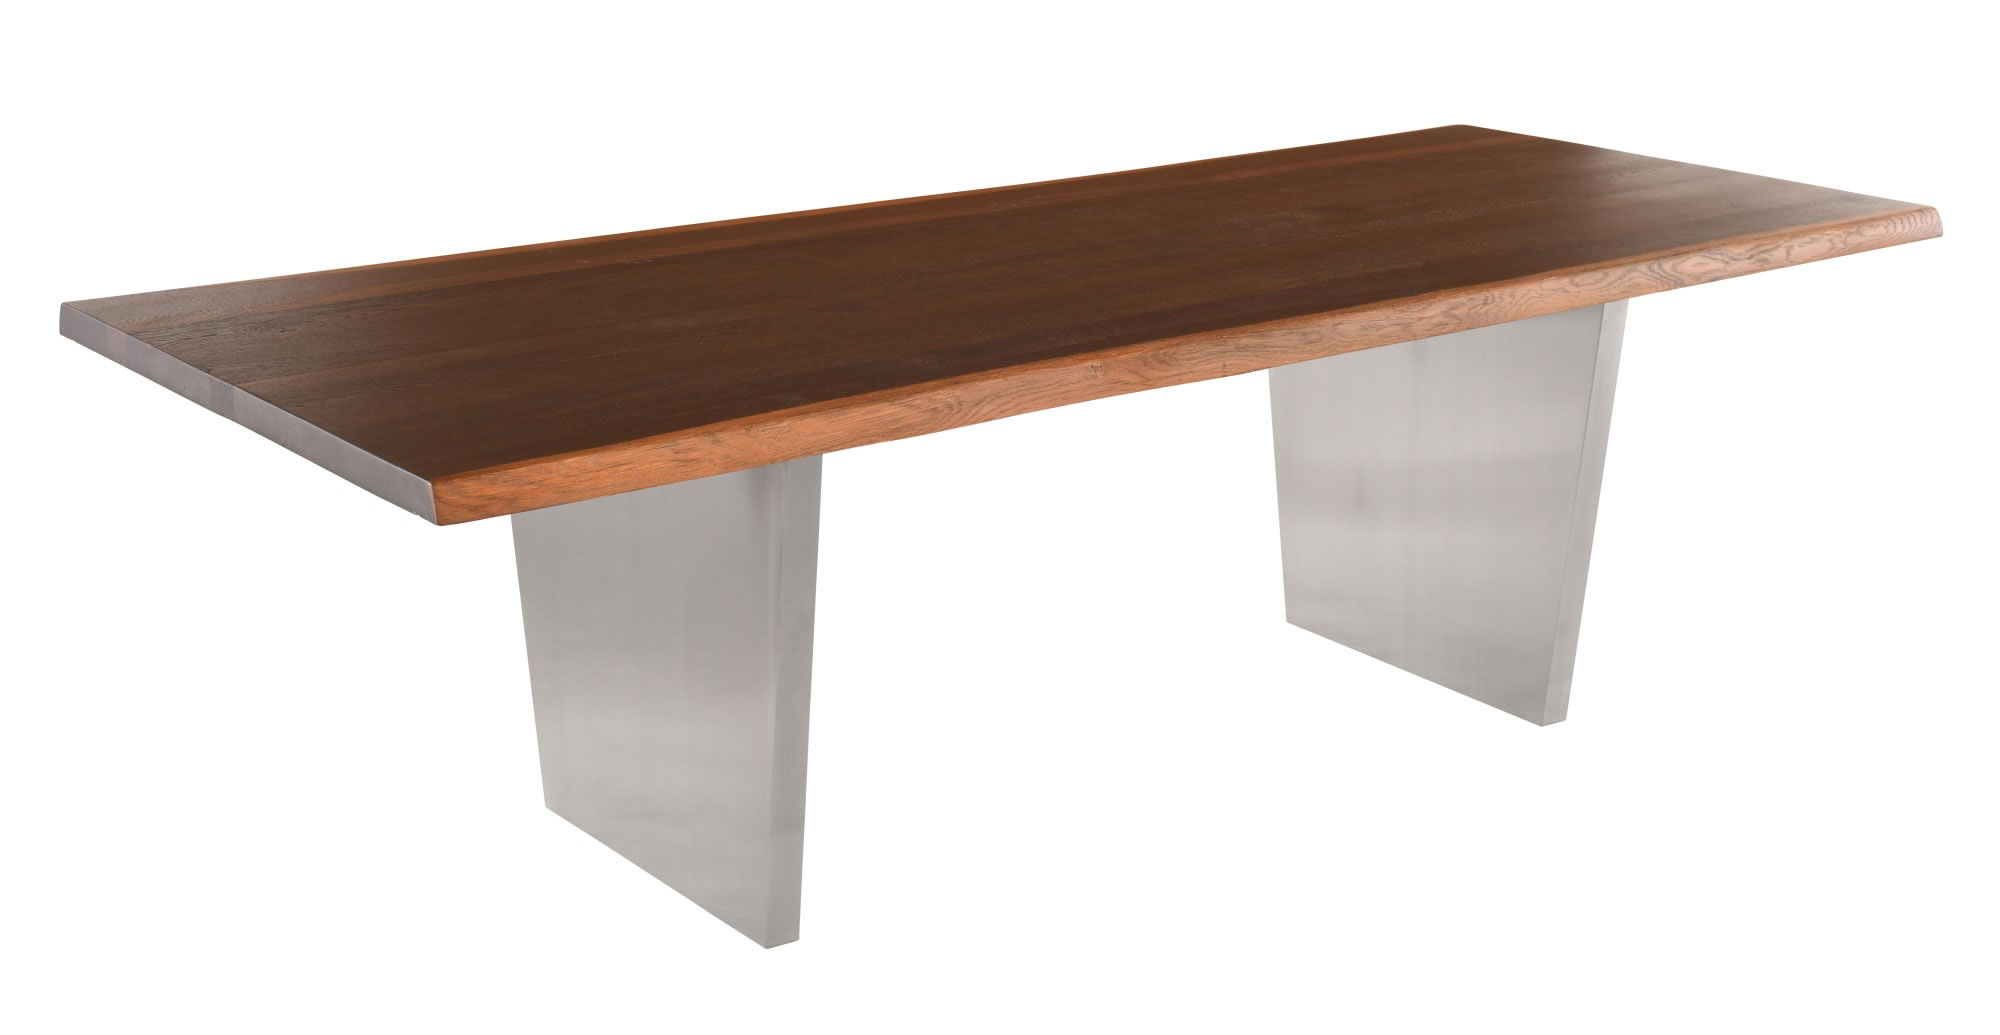 Aiden Dining Table (Long – Seared Oak With Stainless Base) With Regard To Latest Dining Tables In Seared Oak (View 5 of 25)